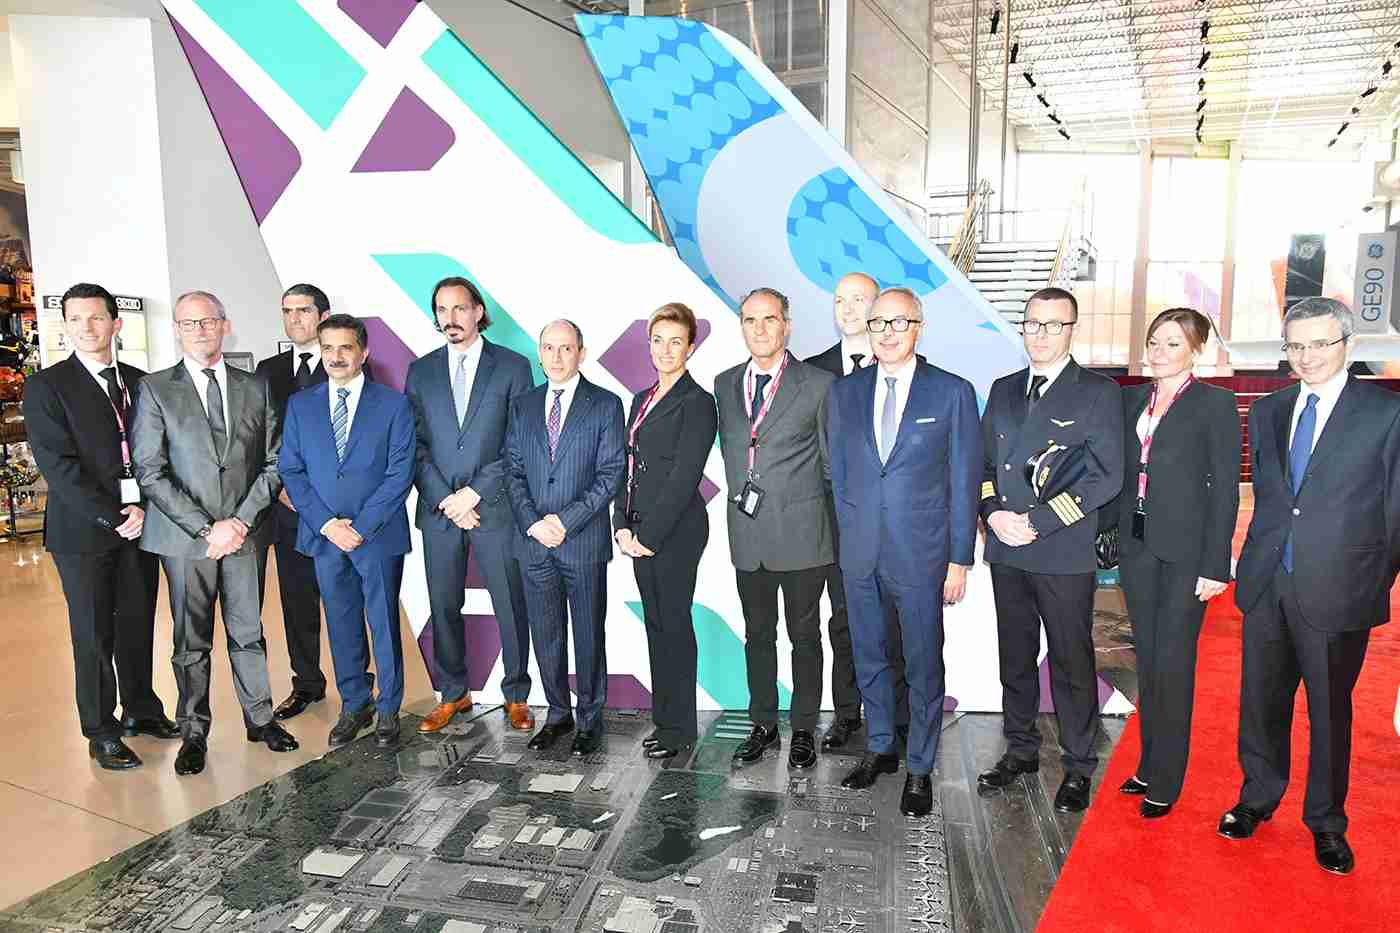 Akbar al Baker (center, in pinstripes) with dignitaries including Air Italy chairman Francesco Violante (4th from R) and Marco Rigotti (1st on R), chairman of Alisarda, which owns 51% of Air Italy